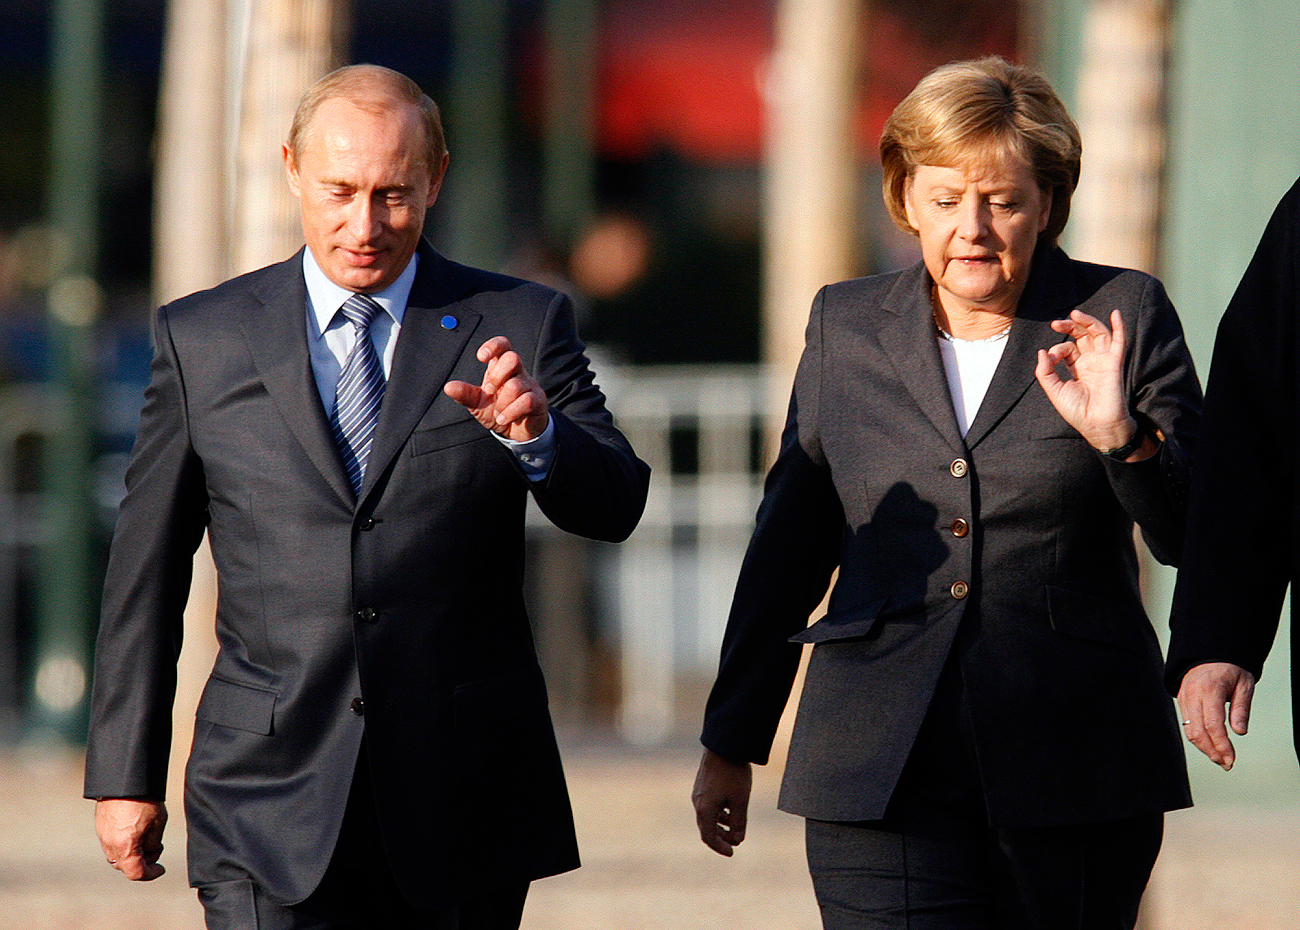 The date of Angela Merkel's visit to Russia had been agreed.